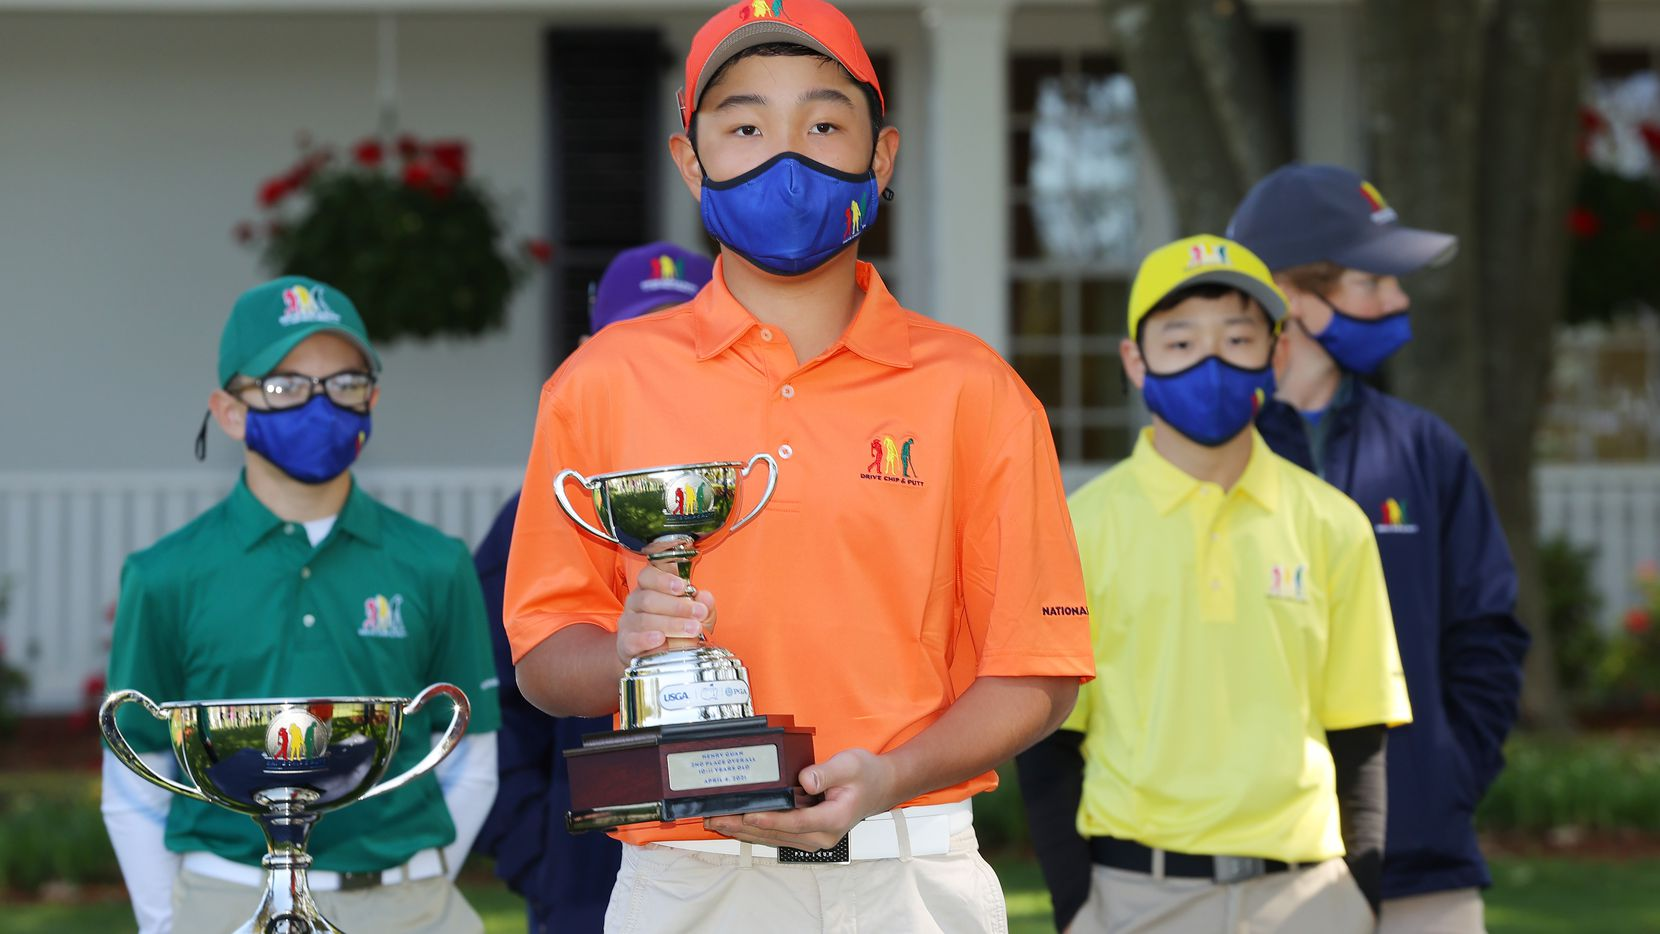 AUGUSTA, GEORGIA - APRIL 04:  Henry Guan, participant in the boys 10-11, poses with his second place overall trophy during the Drive, Chip and Putt Championship at Augusta National Golf Club on April 04, 2021 in Augusta, Georgia. (Photo by Kevin C. Cox/Getty Images)